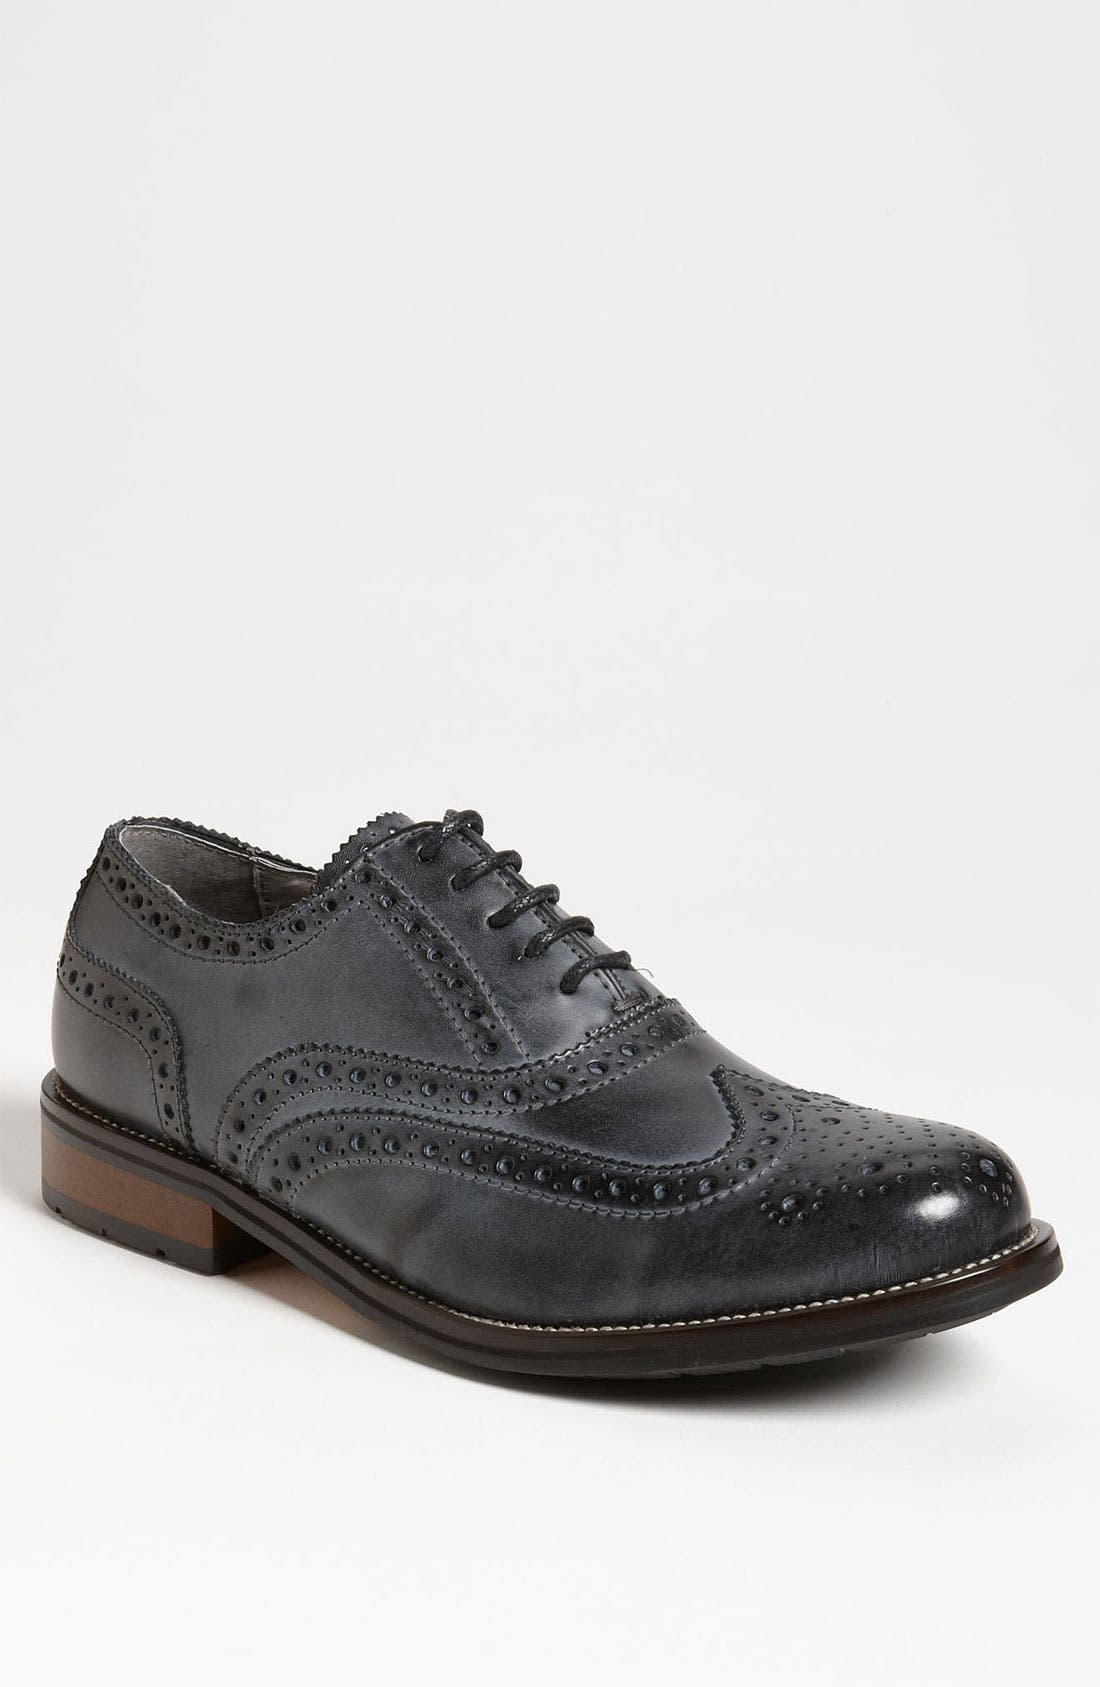 Alternate Image 1 Selected - Steve Madden 'Ethin 2' Wingtip